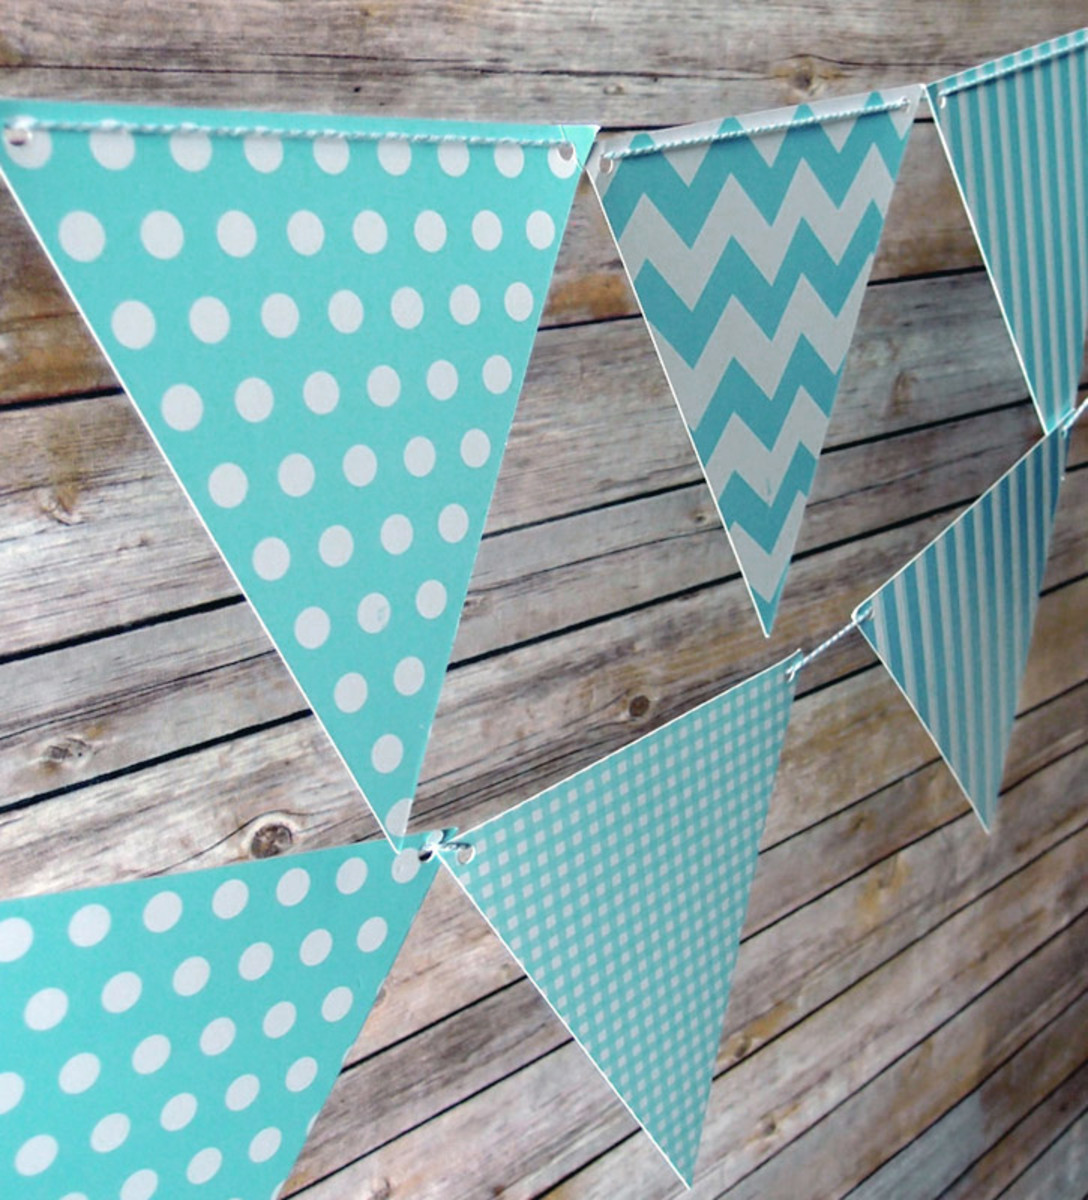 Pennant banners are an easy and cheap way to decorate the walls in your child's room